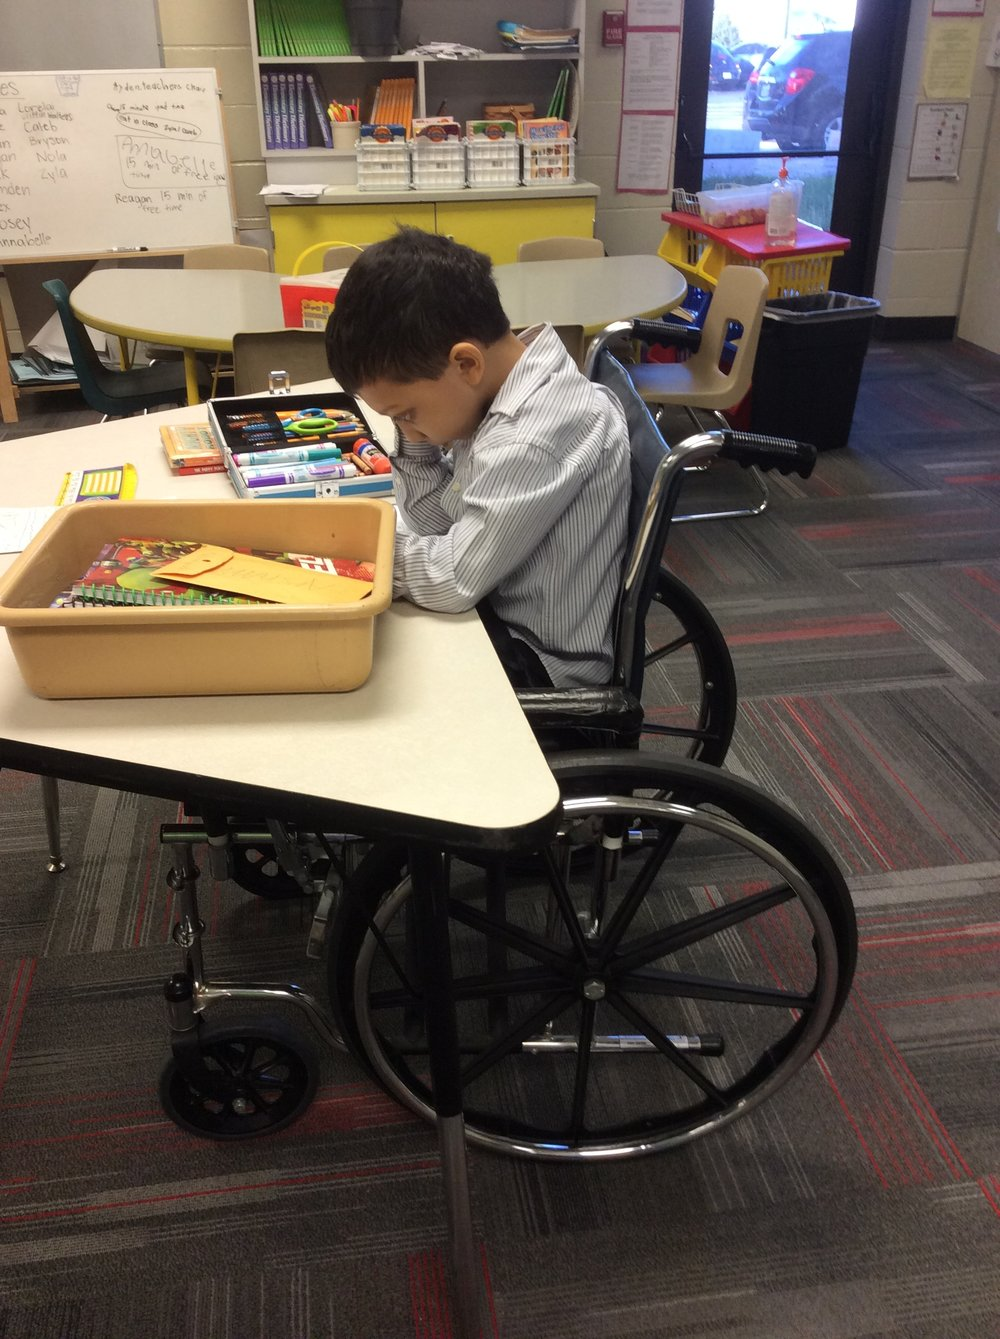 Wheelchairs can be used to access desks and writing surfaces